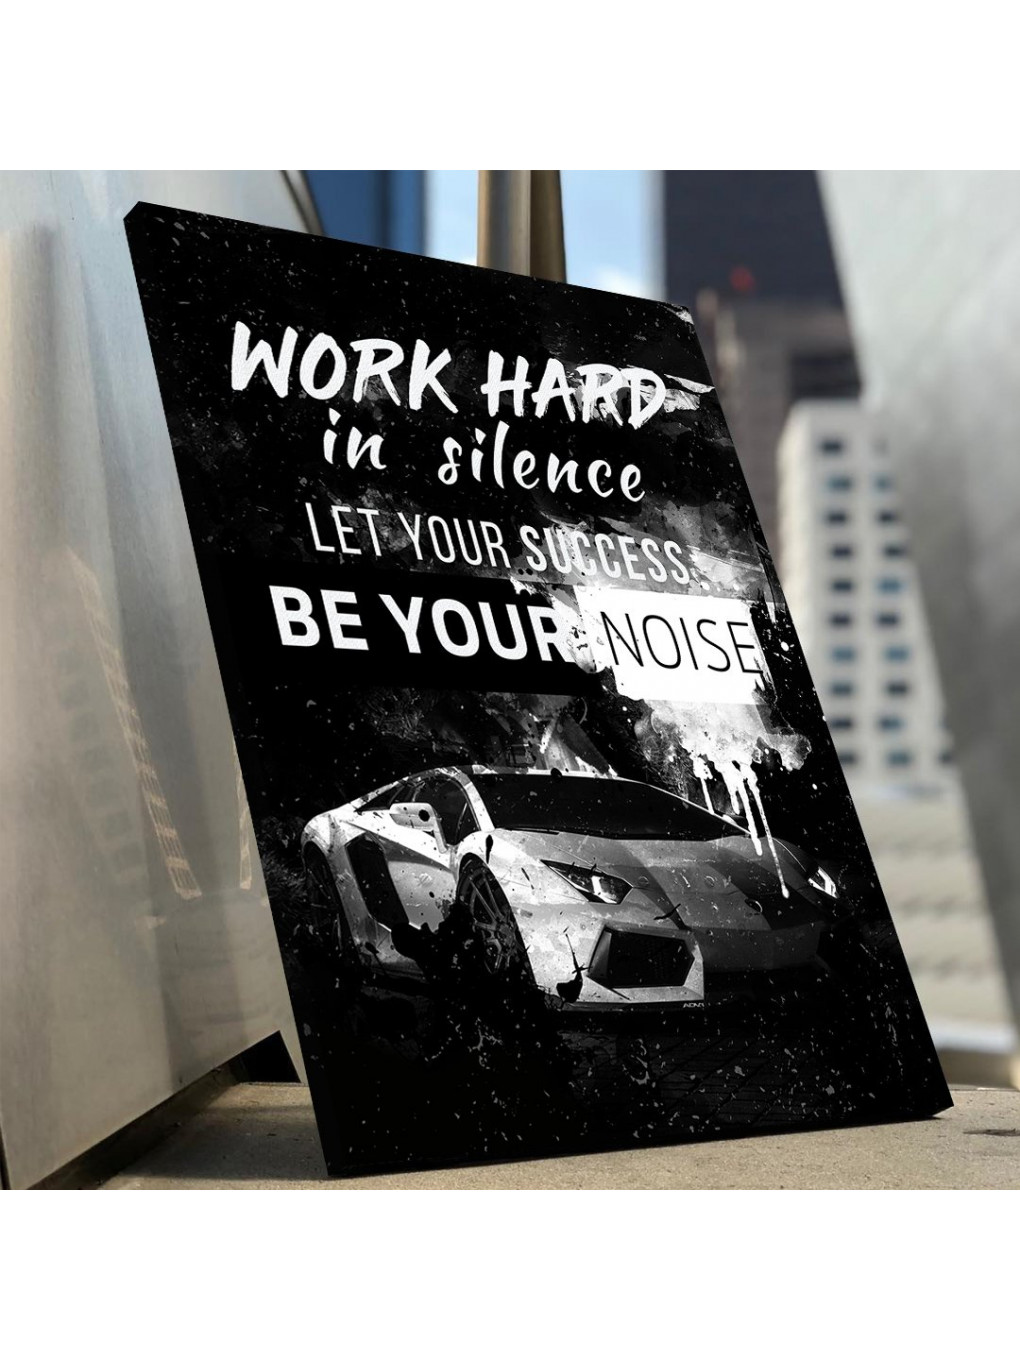 Work hard in silence, let your success be your noise_WRK154_2